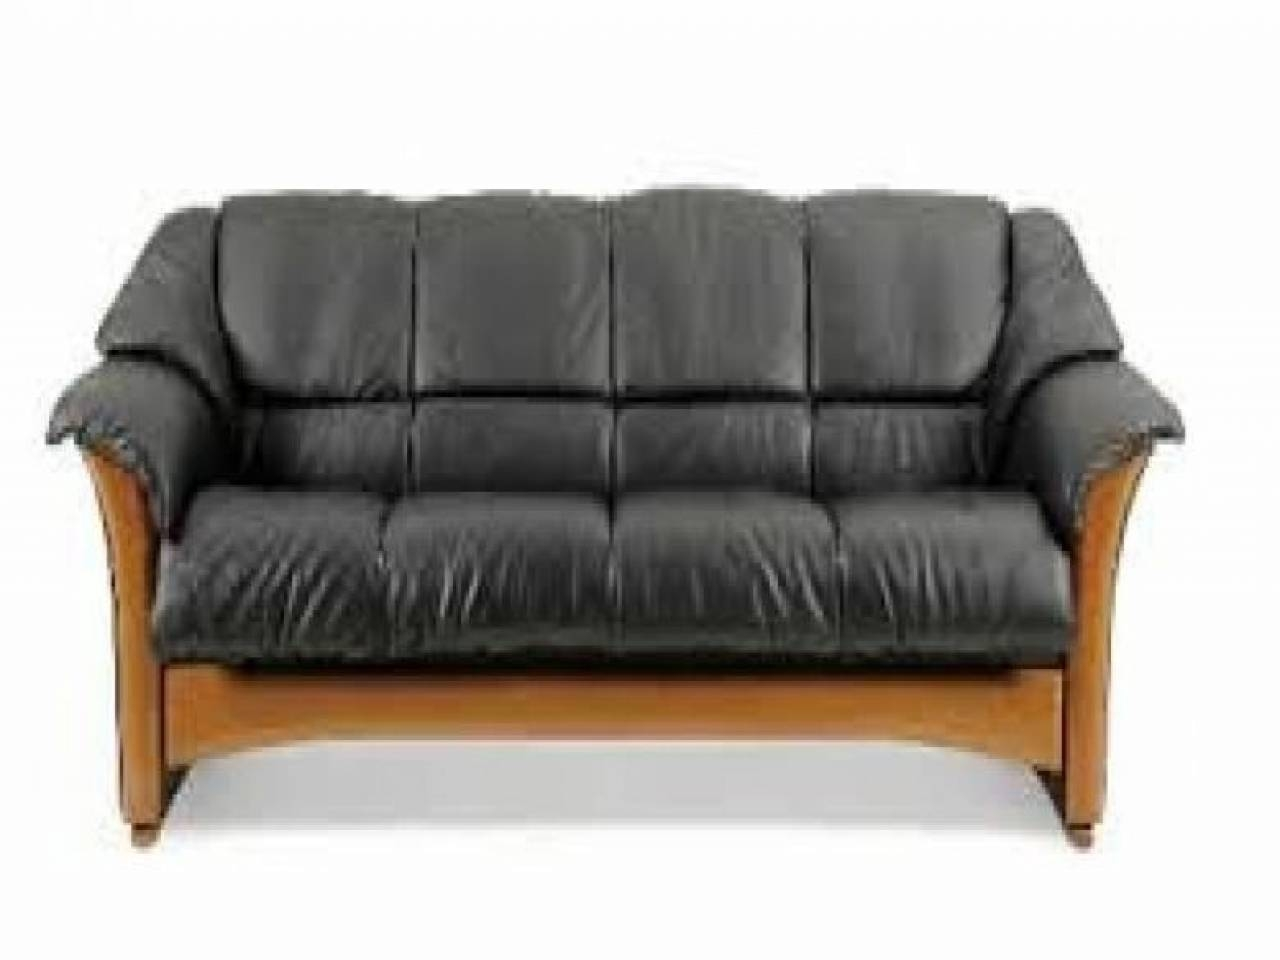 Closeout Sectional Sofas - Cleanupflorida pertaining to Closeout Sectional Sofas (Image 6 of 30)